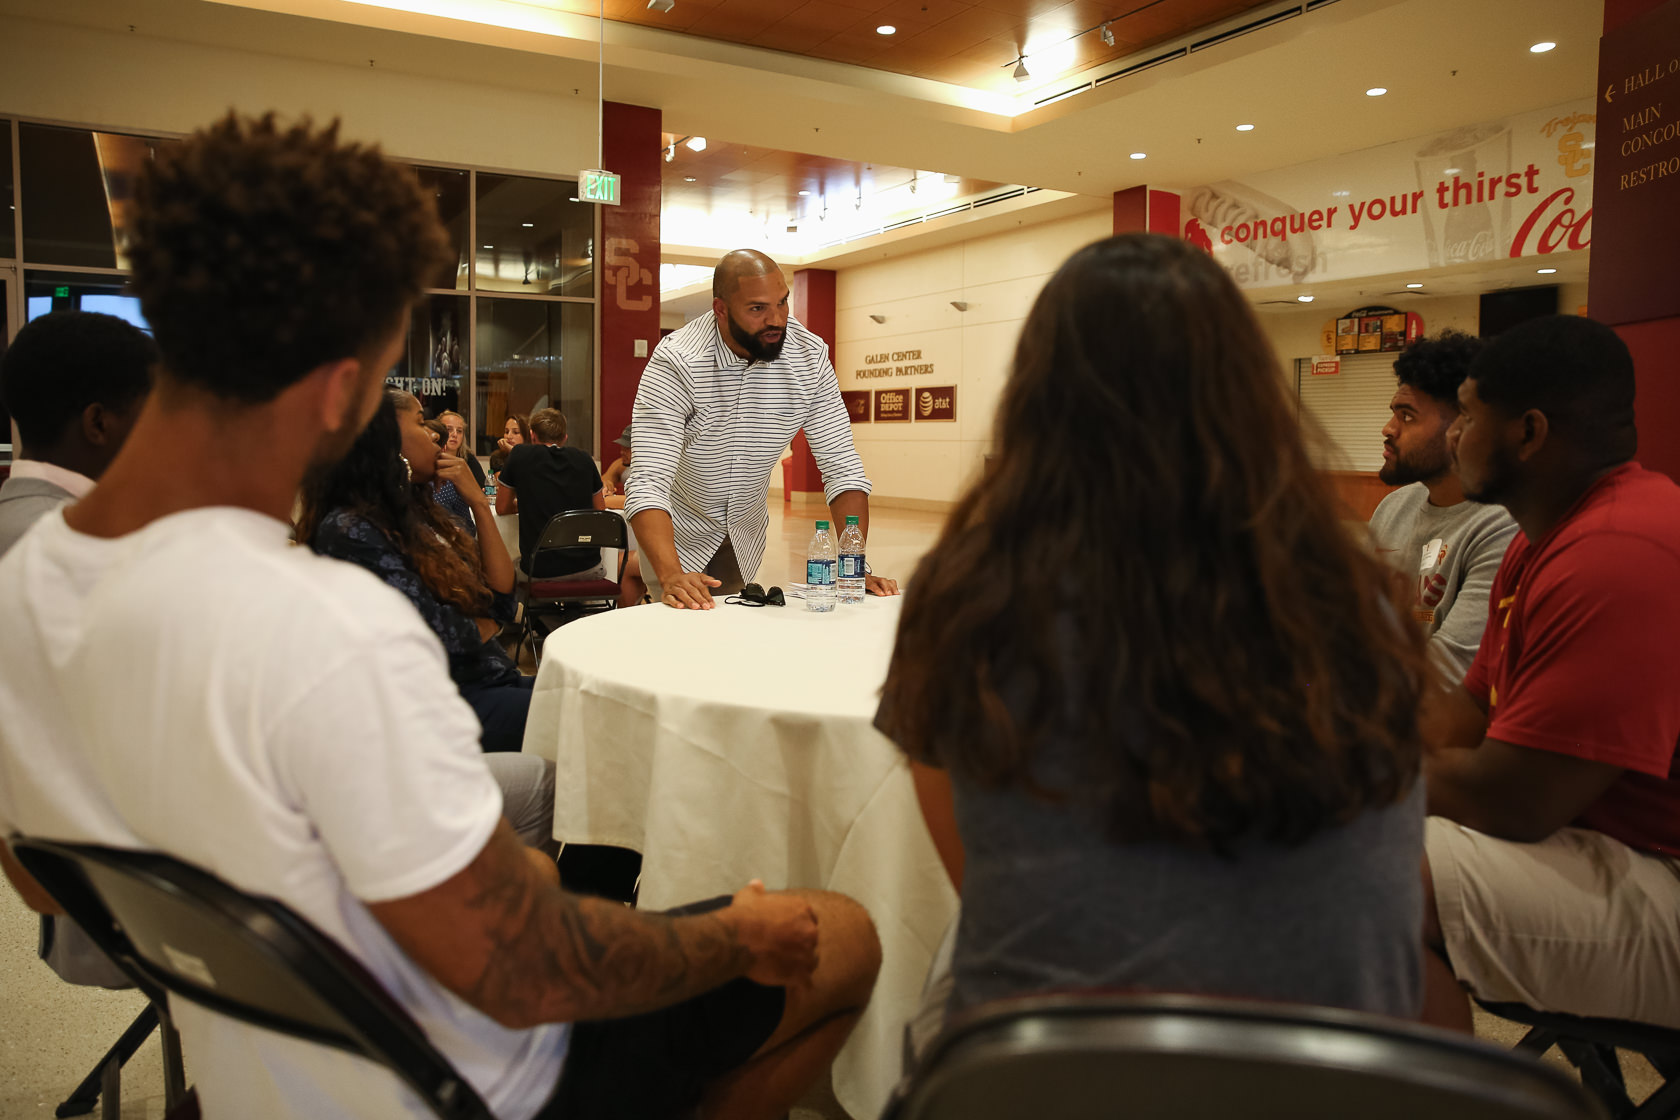 180716-kirby-gladstein-photograpy-RISE-Panel-USC-3217.jpg